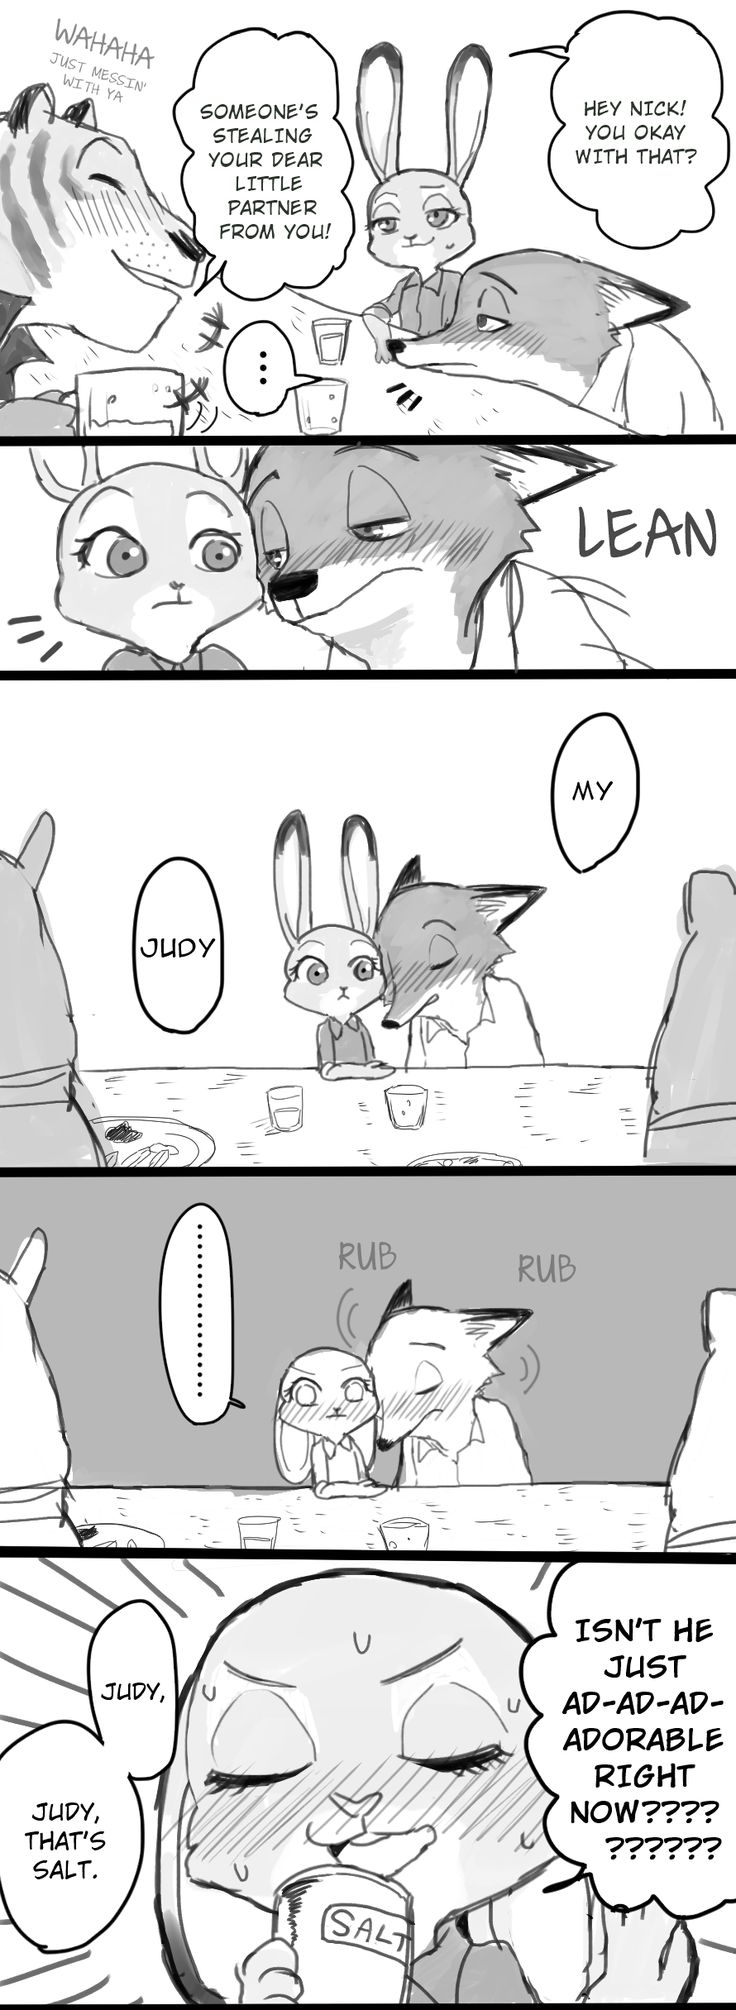 Back in June of 2016, we featured a short little comic called Nick and Judy Drink , about Judy dealing with a drunk Nic...